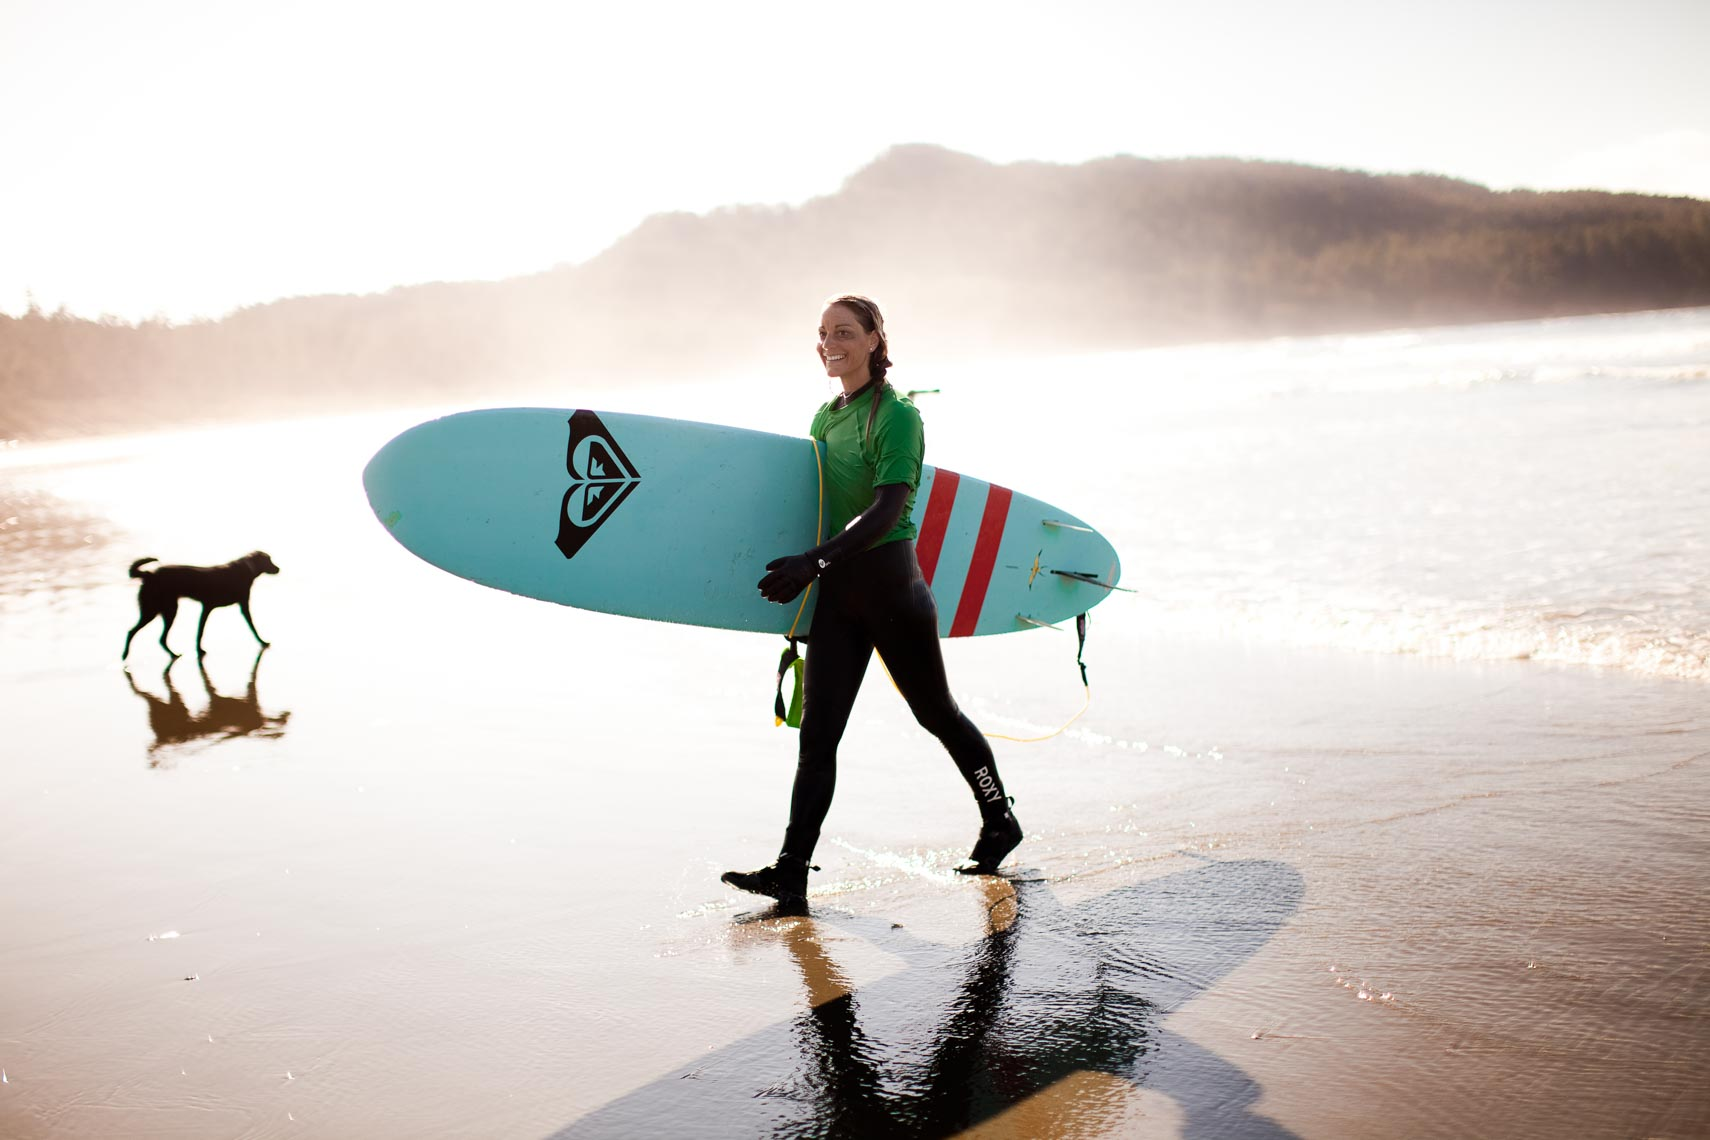 Female surfer walking with surfboard in Tofino, British Columbia, Canada